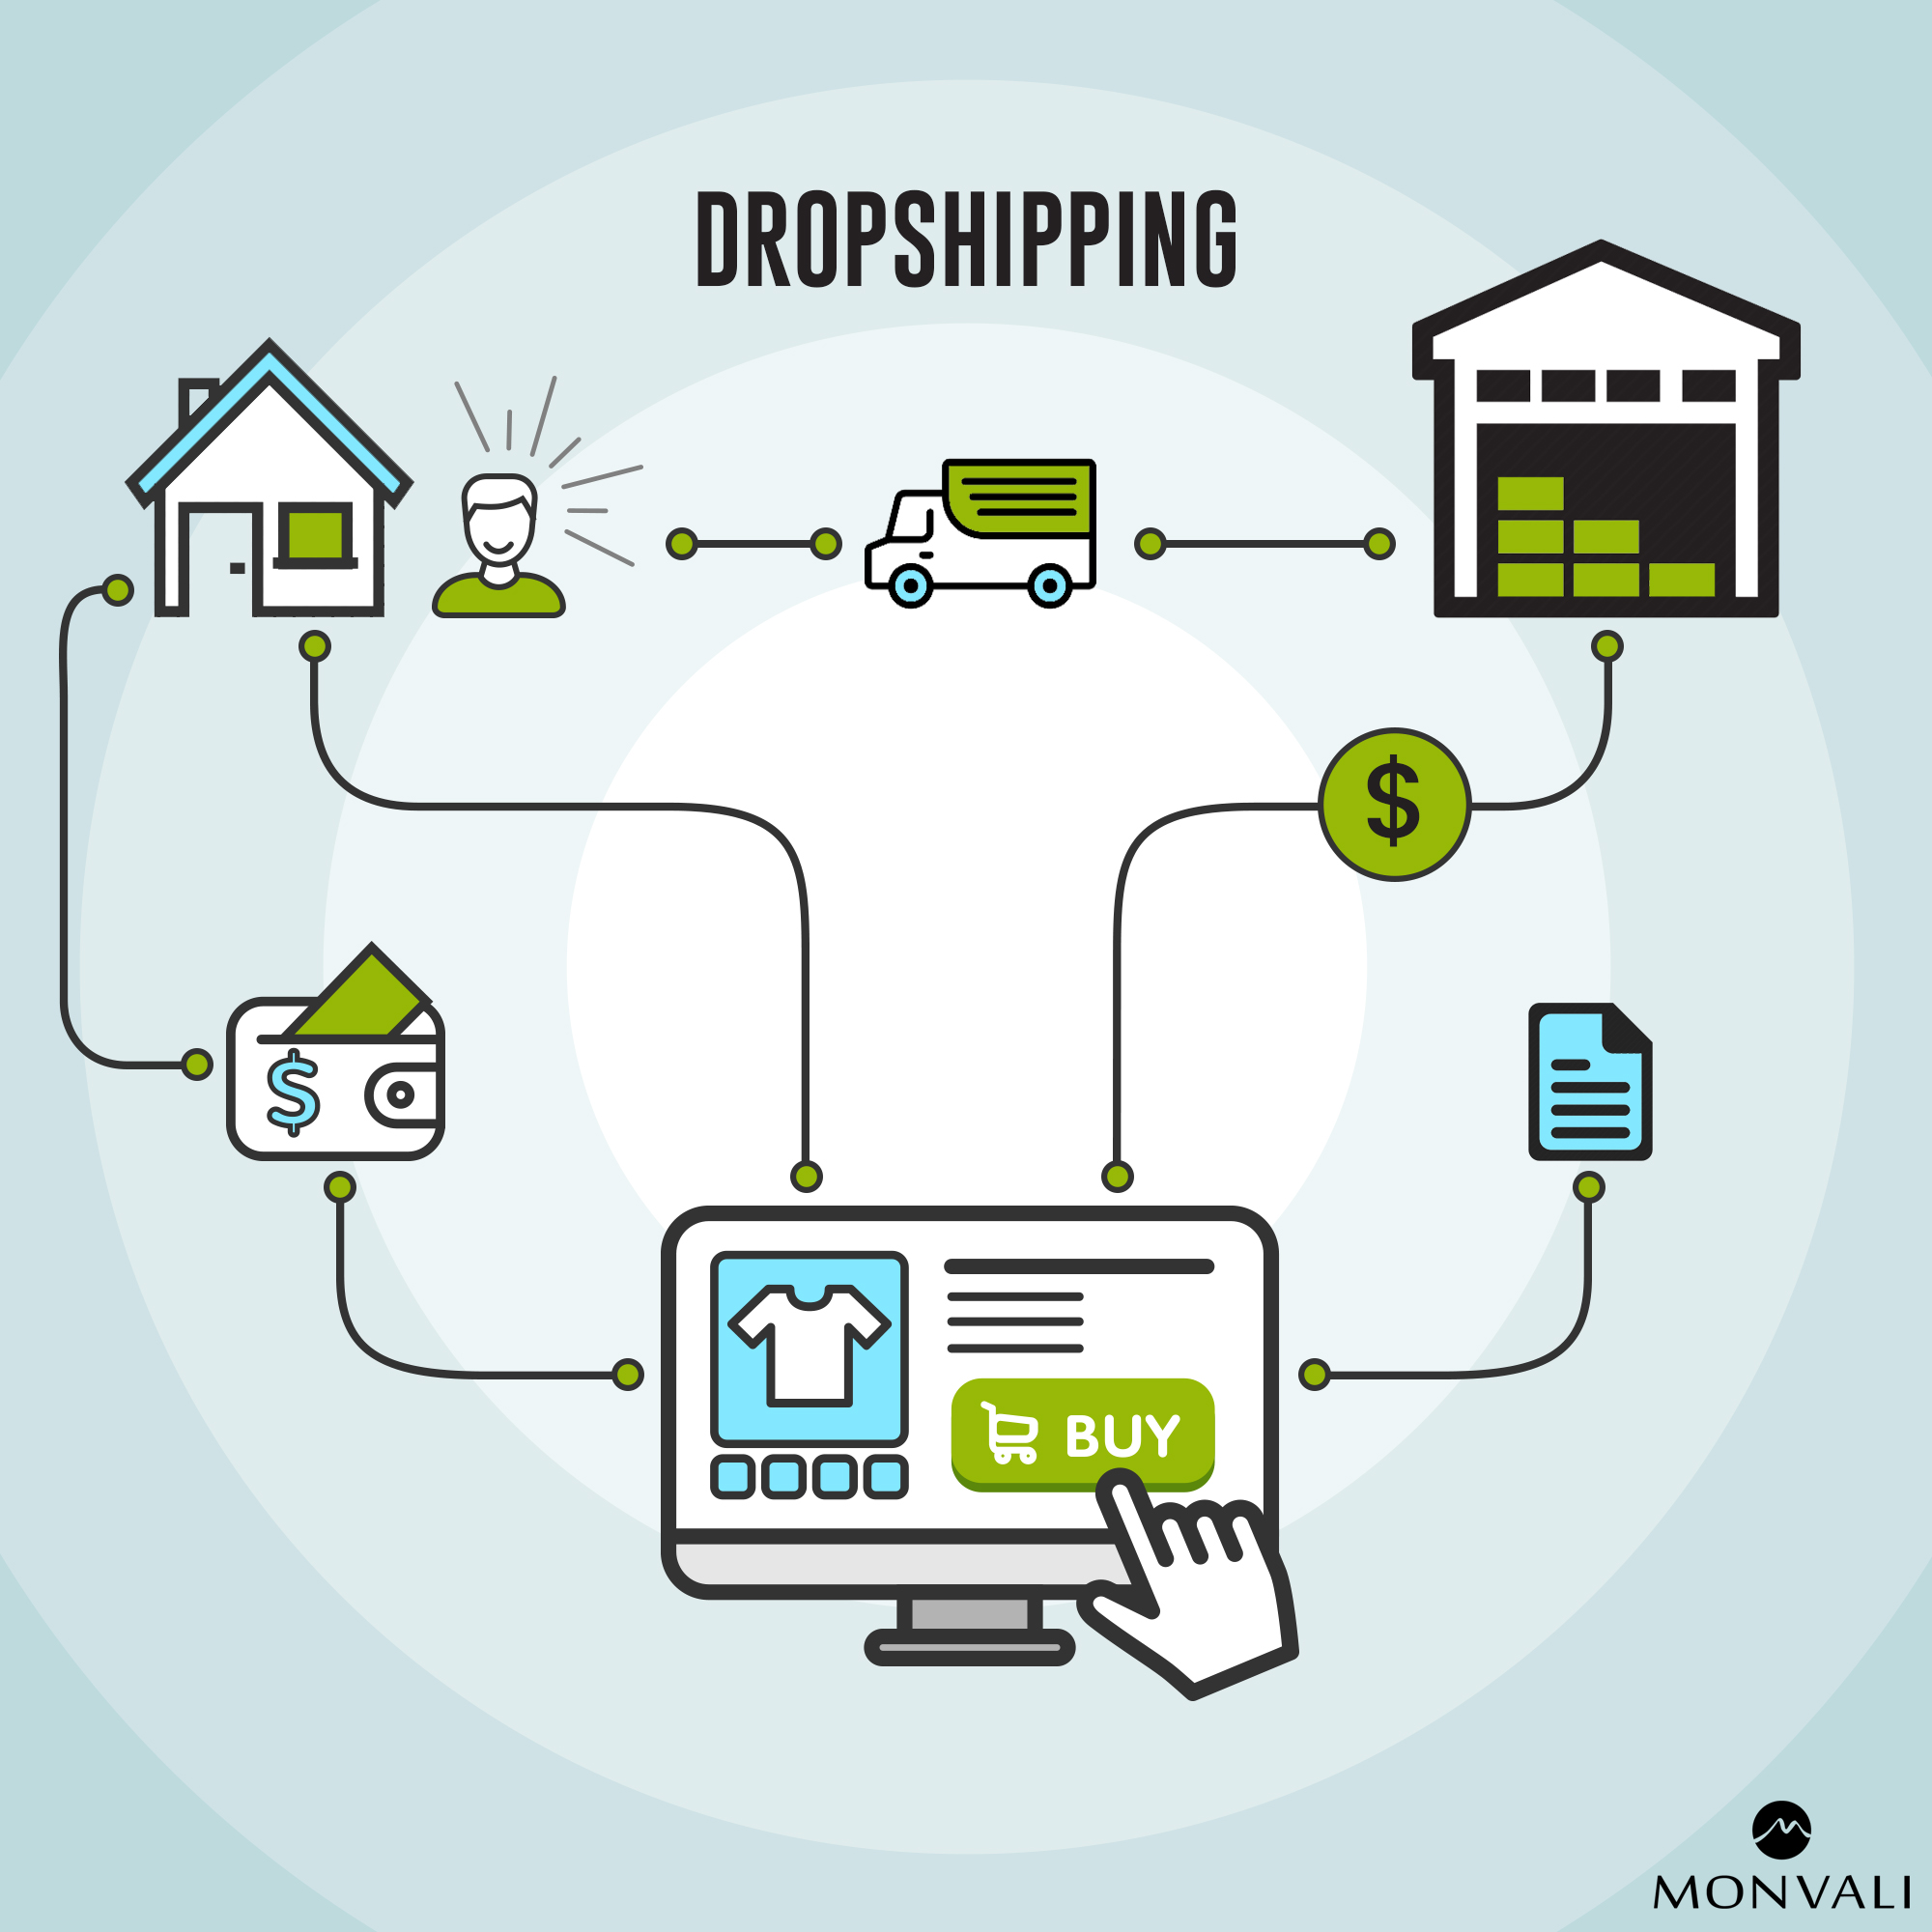 MONVALI leather goods dropshipping infographic